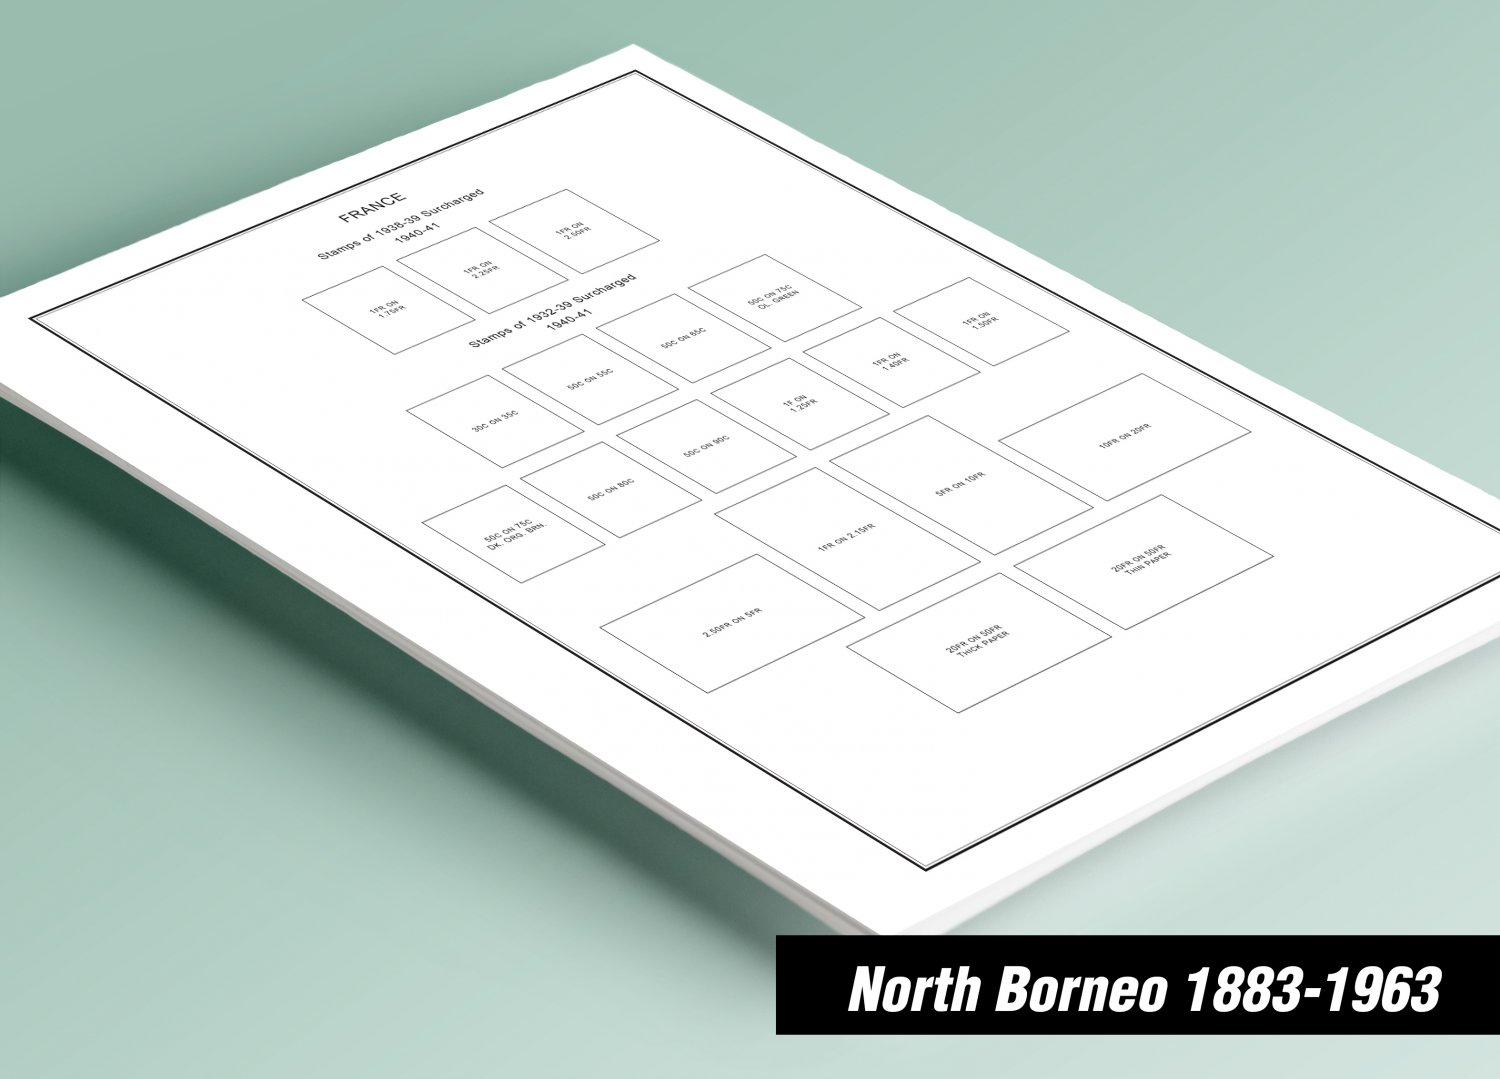 PRINTED BRITISH NORTH BORNEO 1883-1963 STAMP ALBUM PAGES (32 pages)